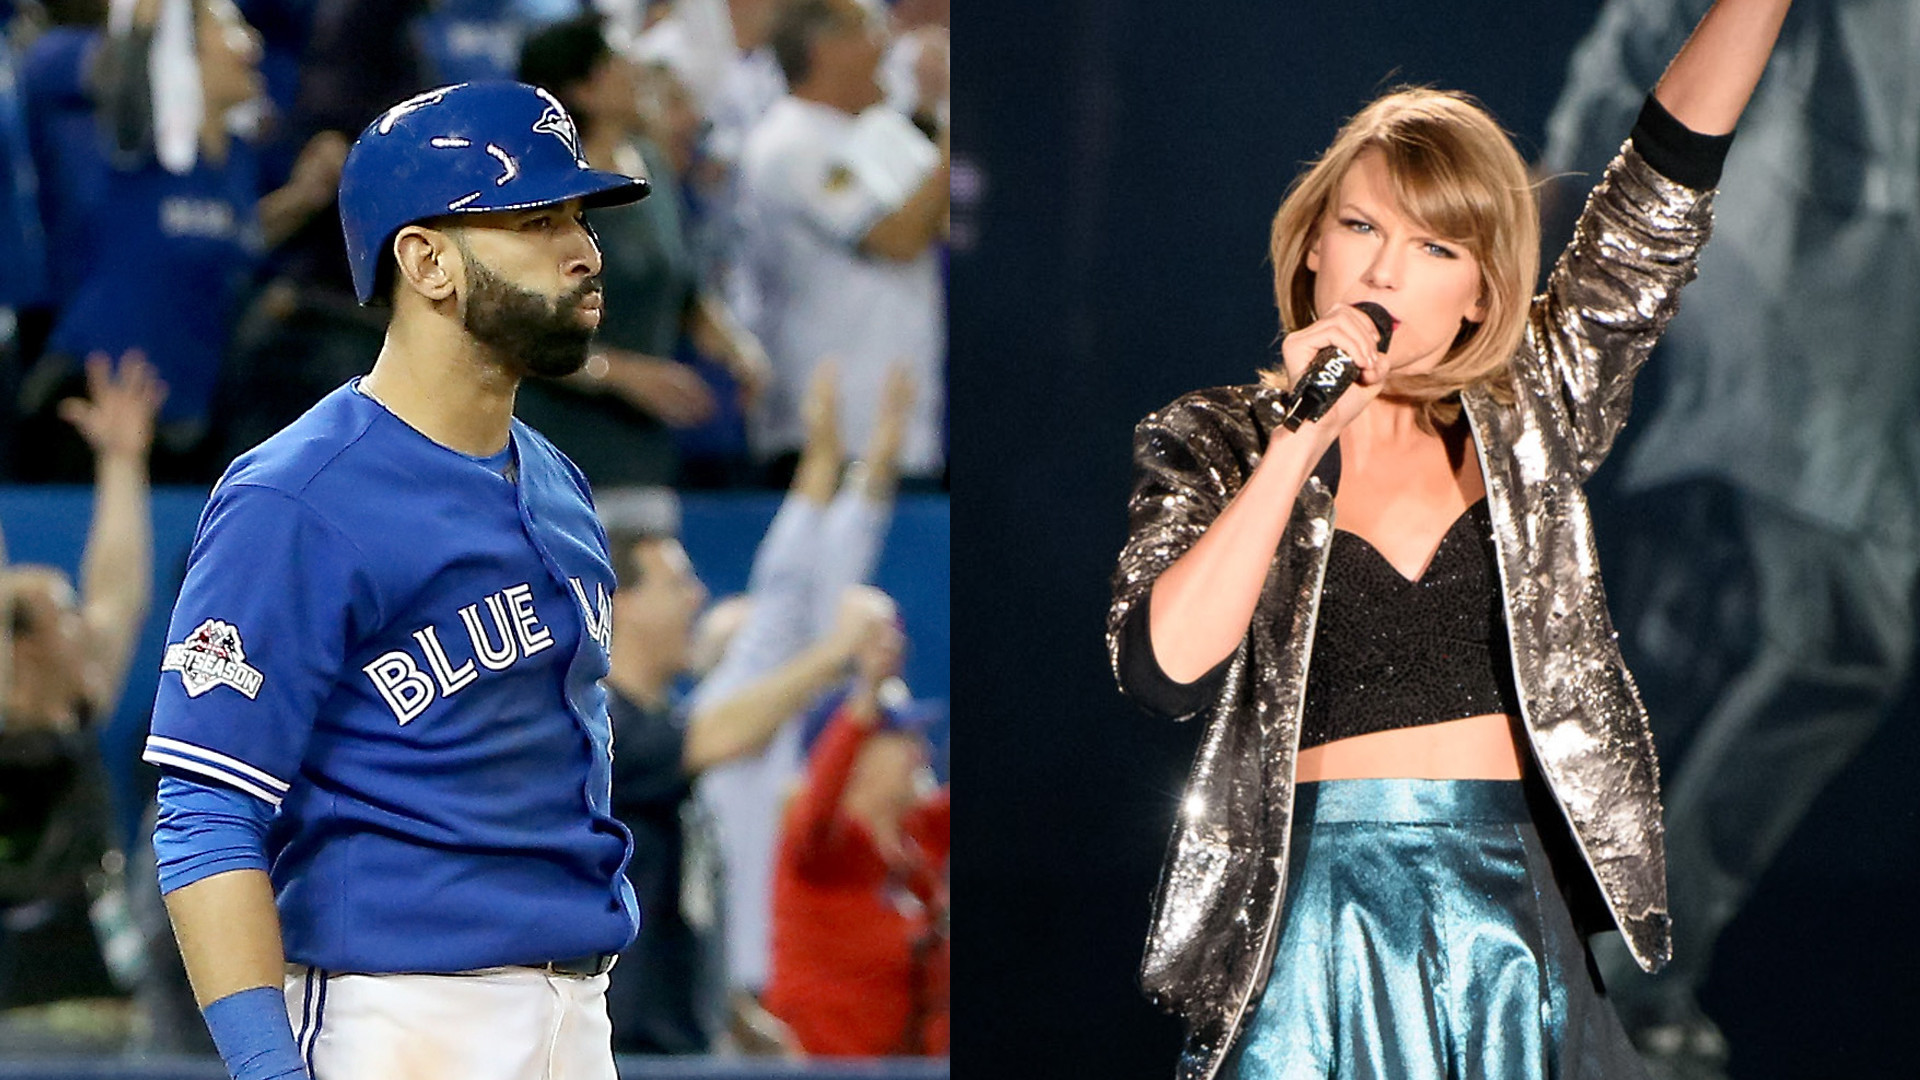 1920x1080 Jose Bautista | Taylor Swift